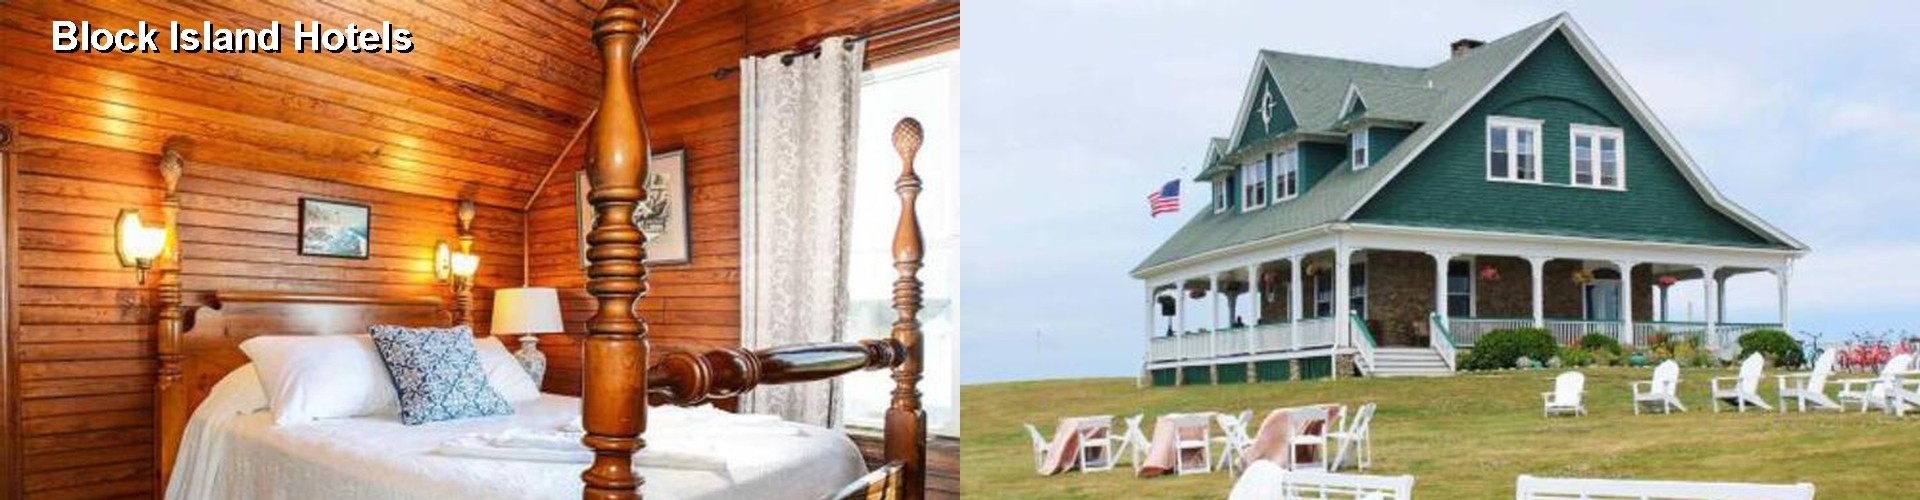 2 Best Hotels near Block Island